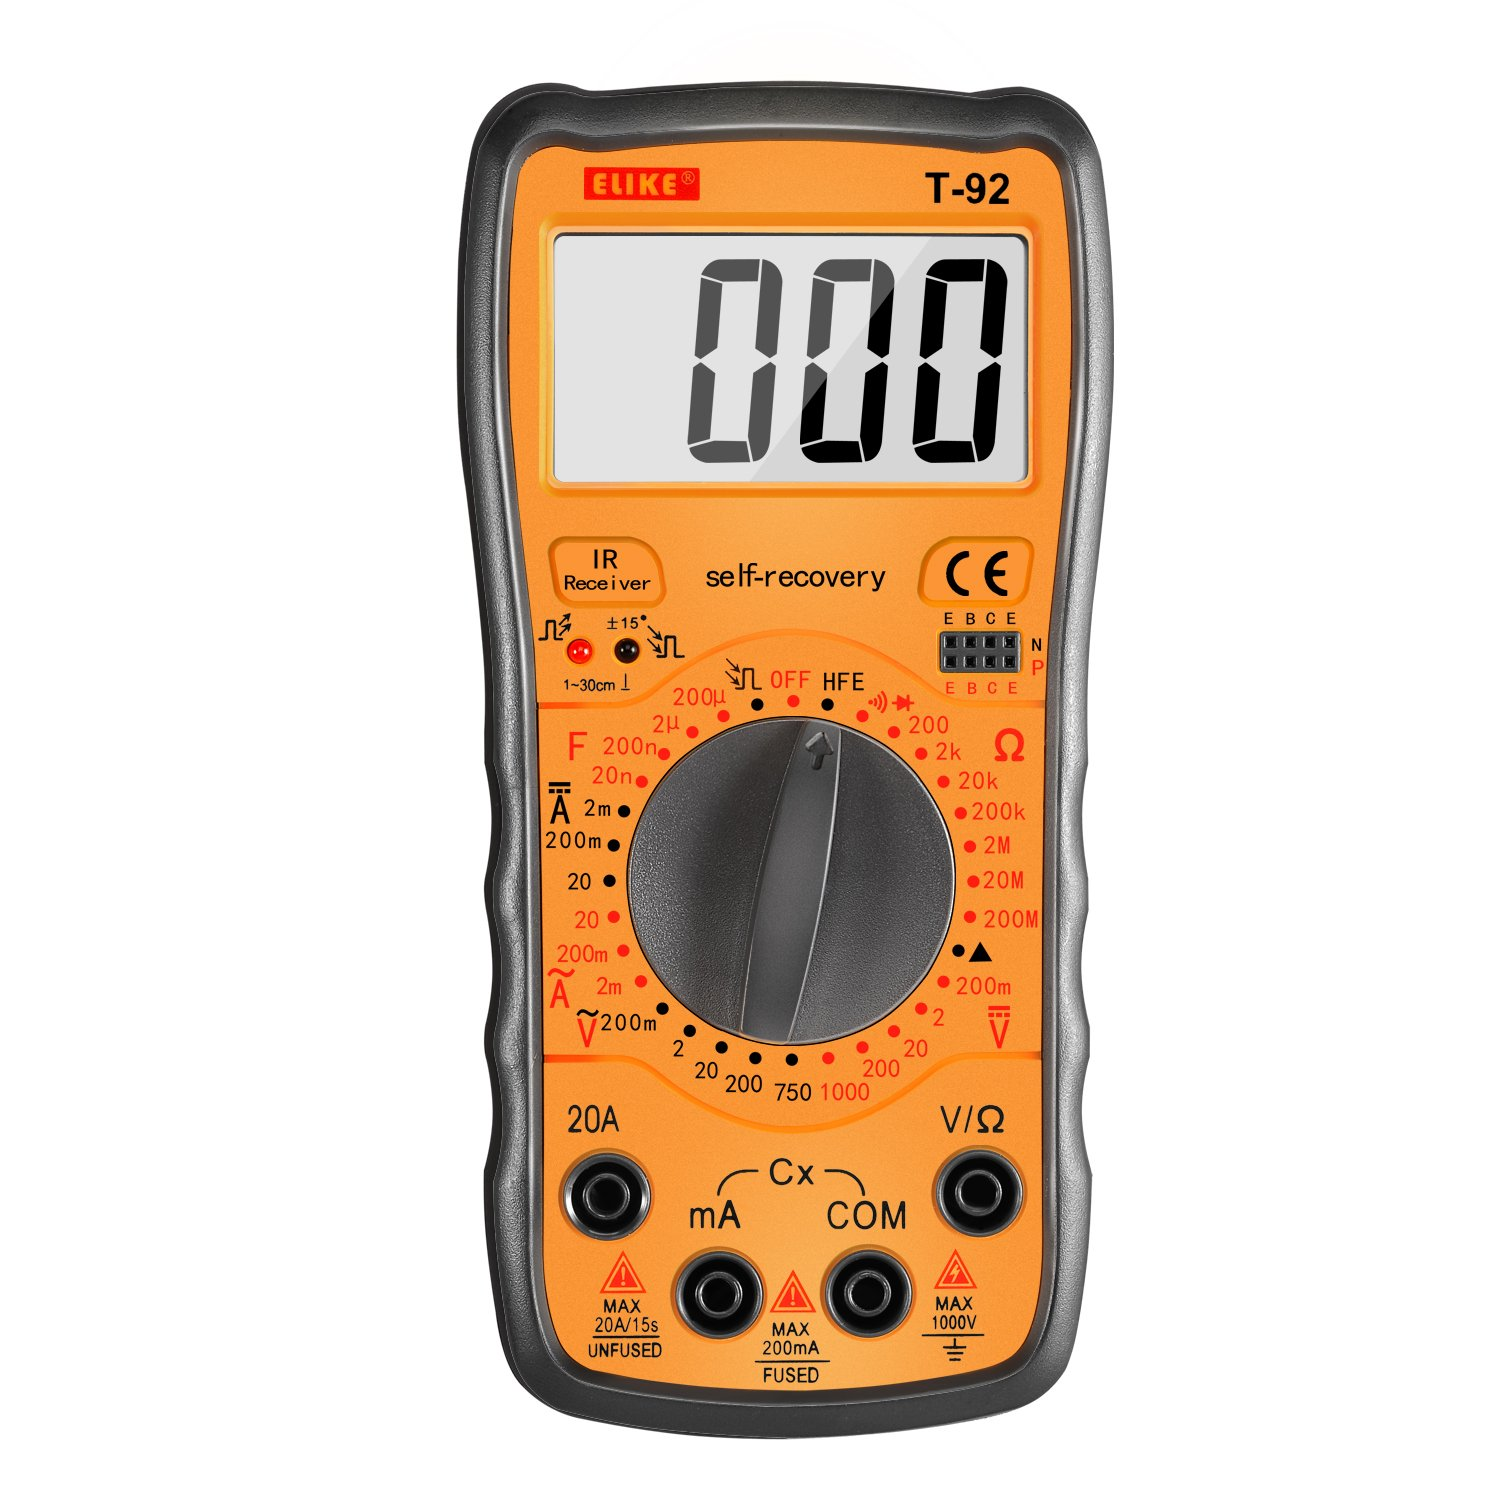 ELIKE T-92 Self-Recovery Digital Multimeter Amp/Ohm/Volt with Diode,Continuity, Capacitance,hFE,IR Detector and Livewire Identification